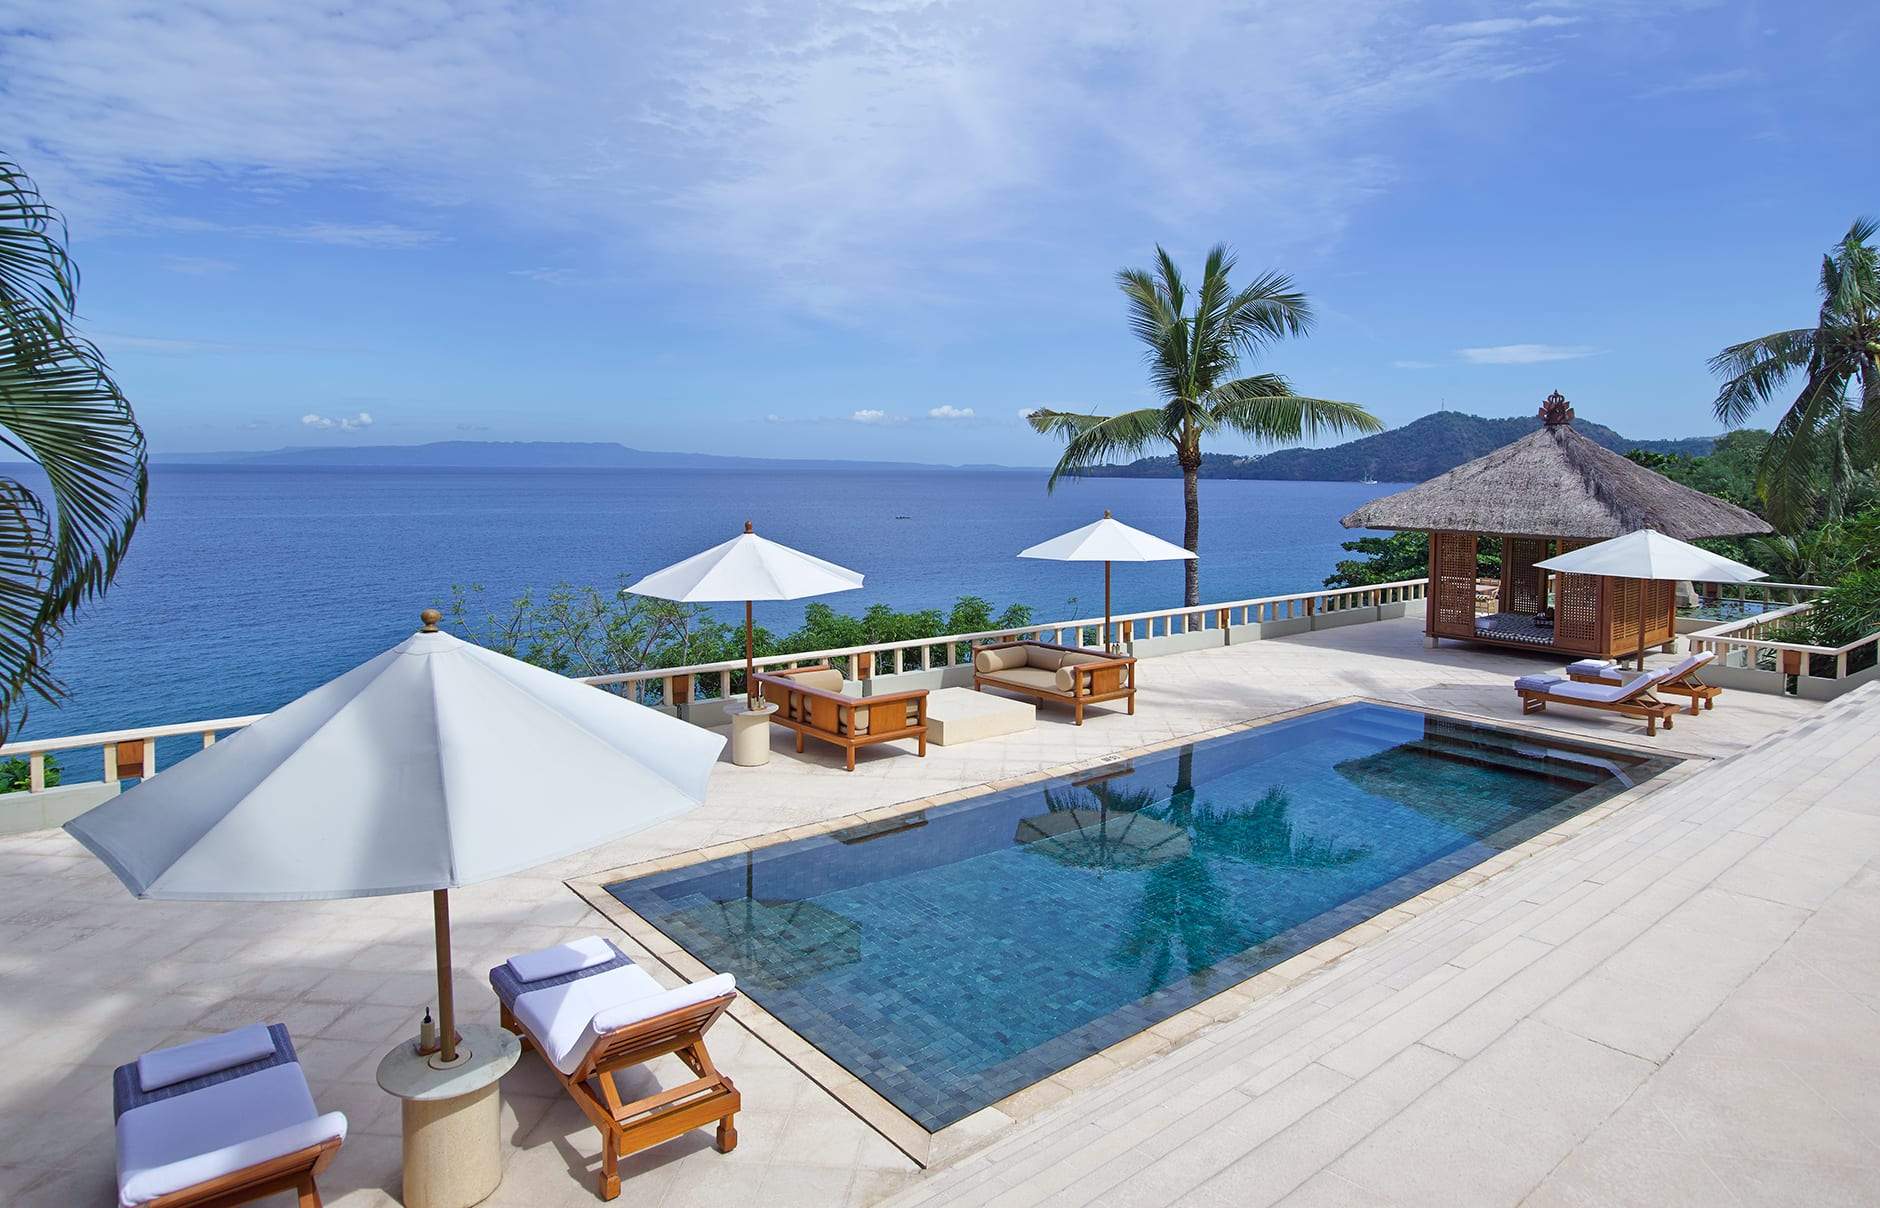 Amankila Bali Indonesia Luxury Hotel Review By